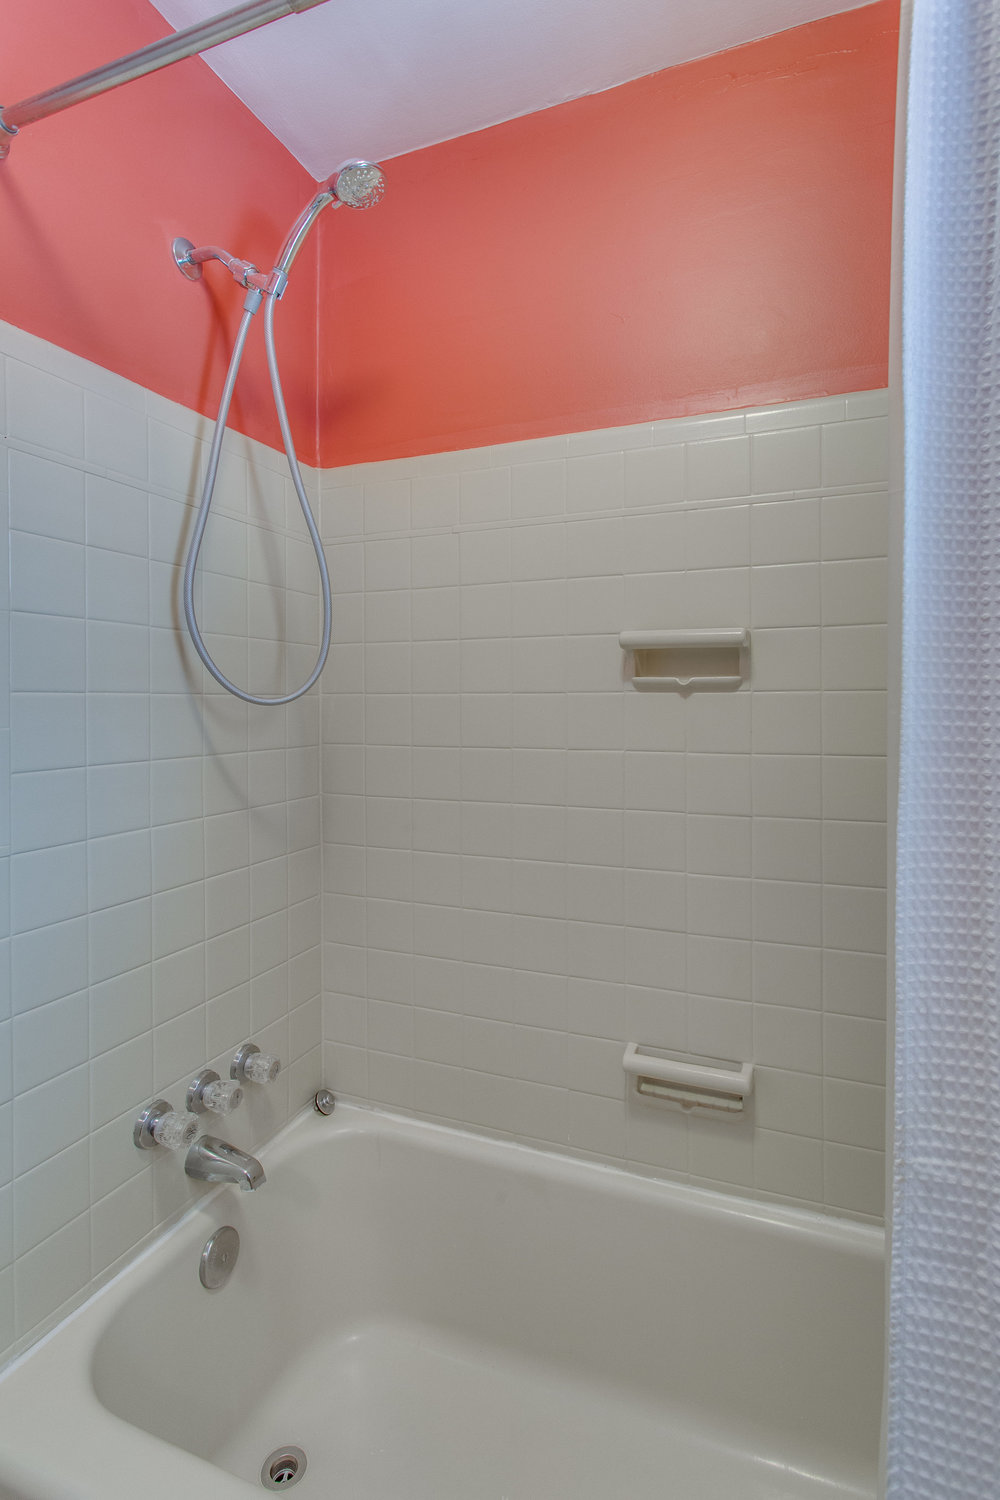 027-7-Master Bathroom.jpg